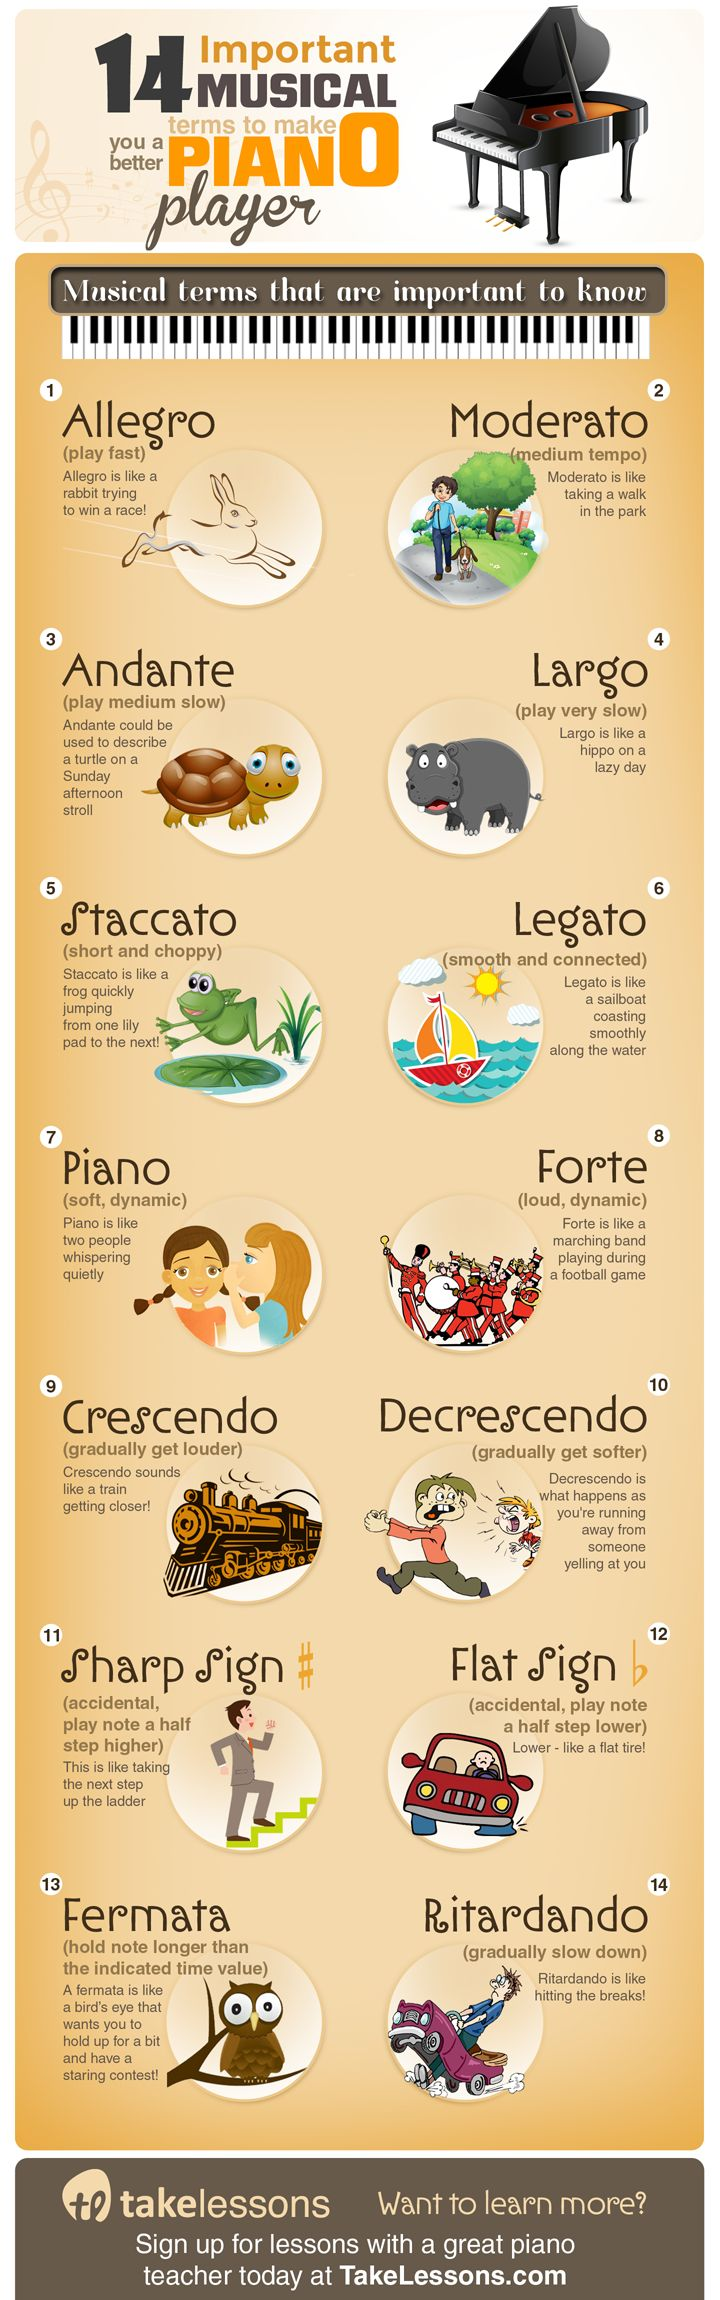 14 Common Musical Terms All Piano Players Need to Know: http://takelessons.com/blog/sheet-music-terms-piano-z06?utm_source=social&utm_medium=blog&utm_campaign=pinterest #playpiano